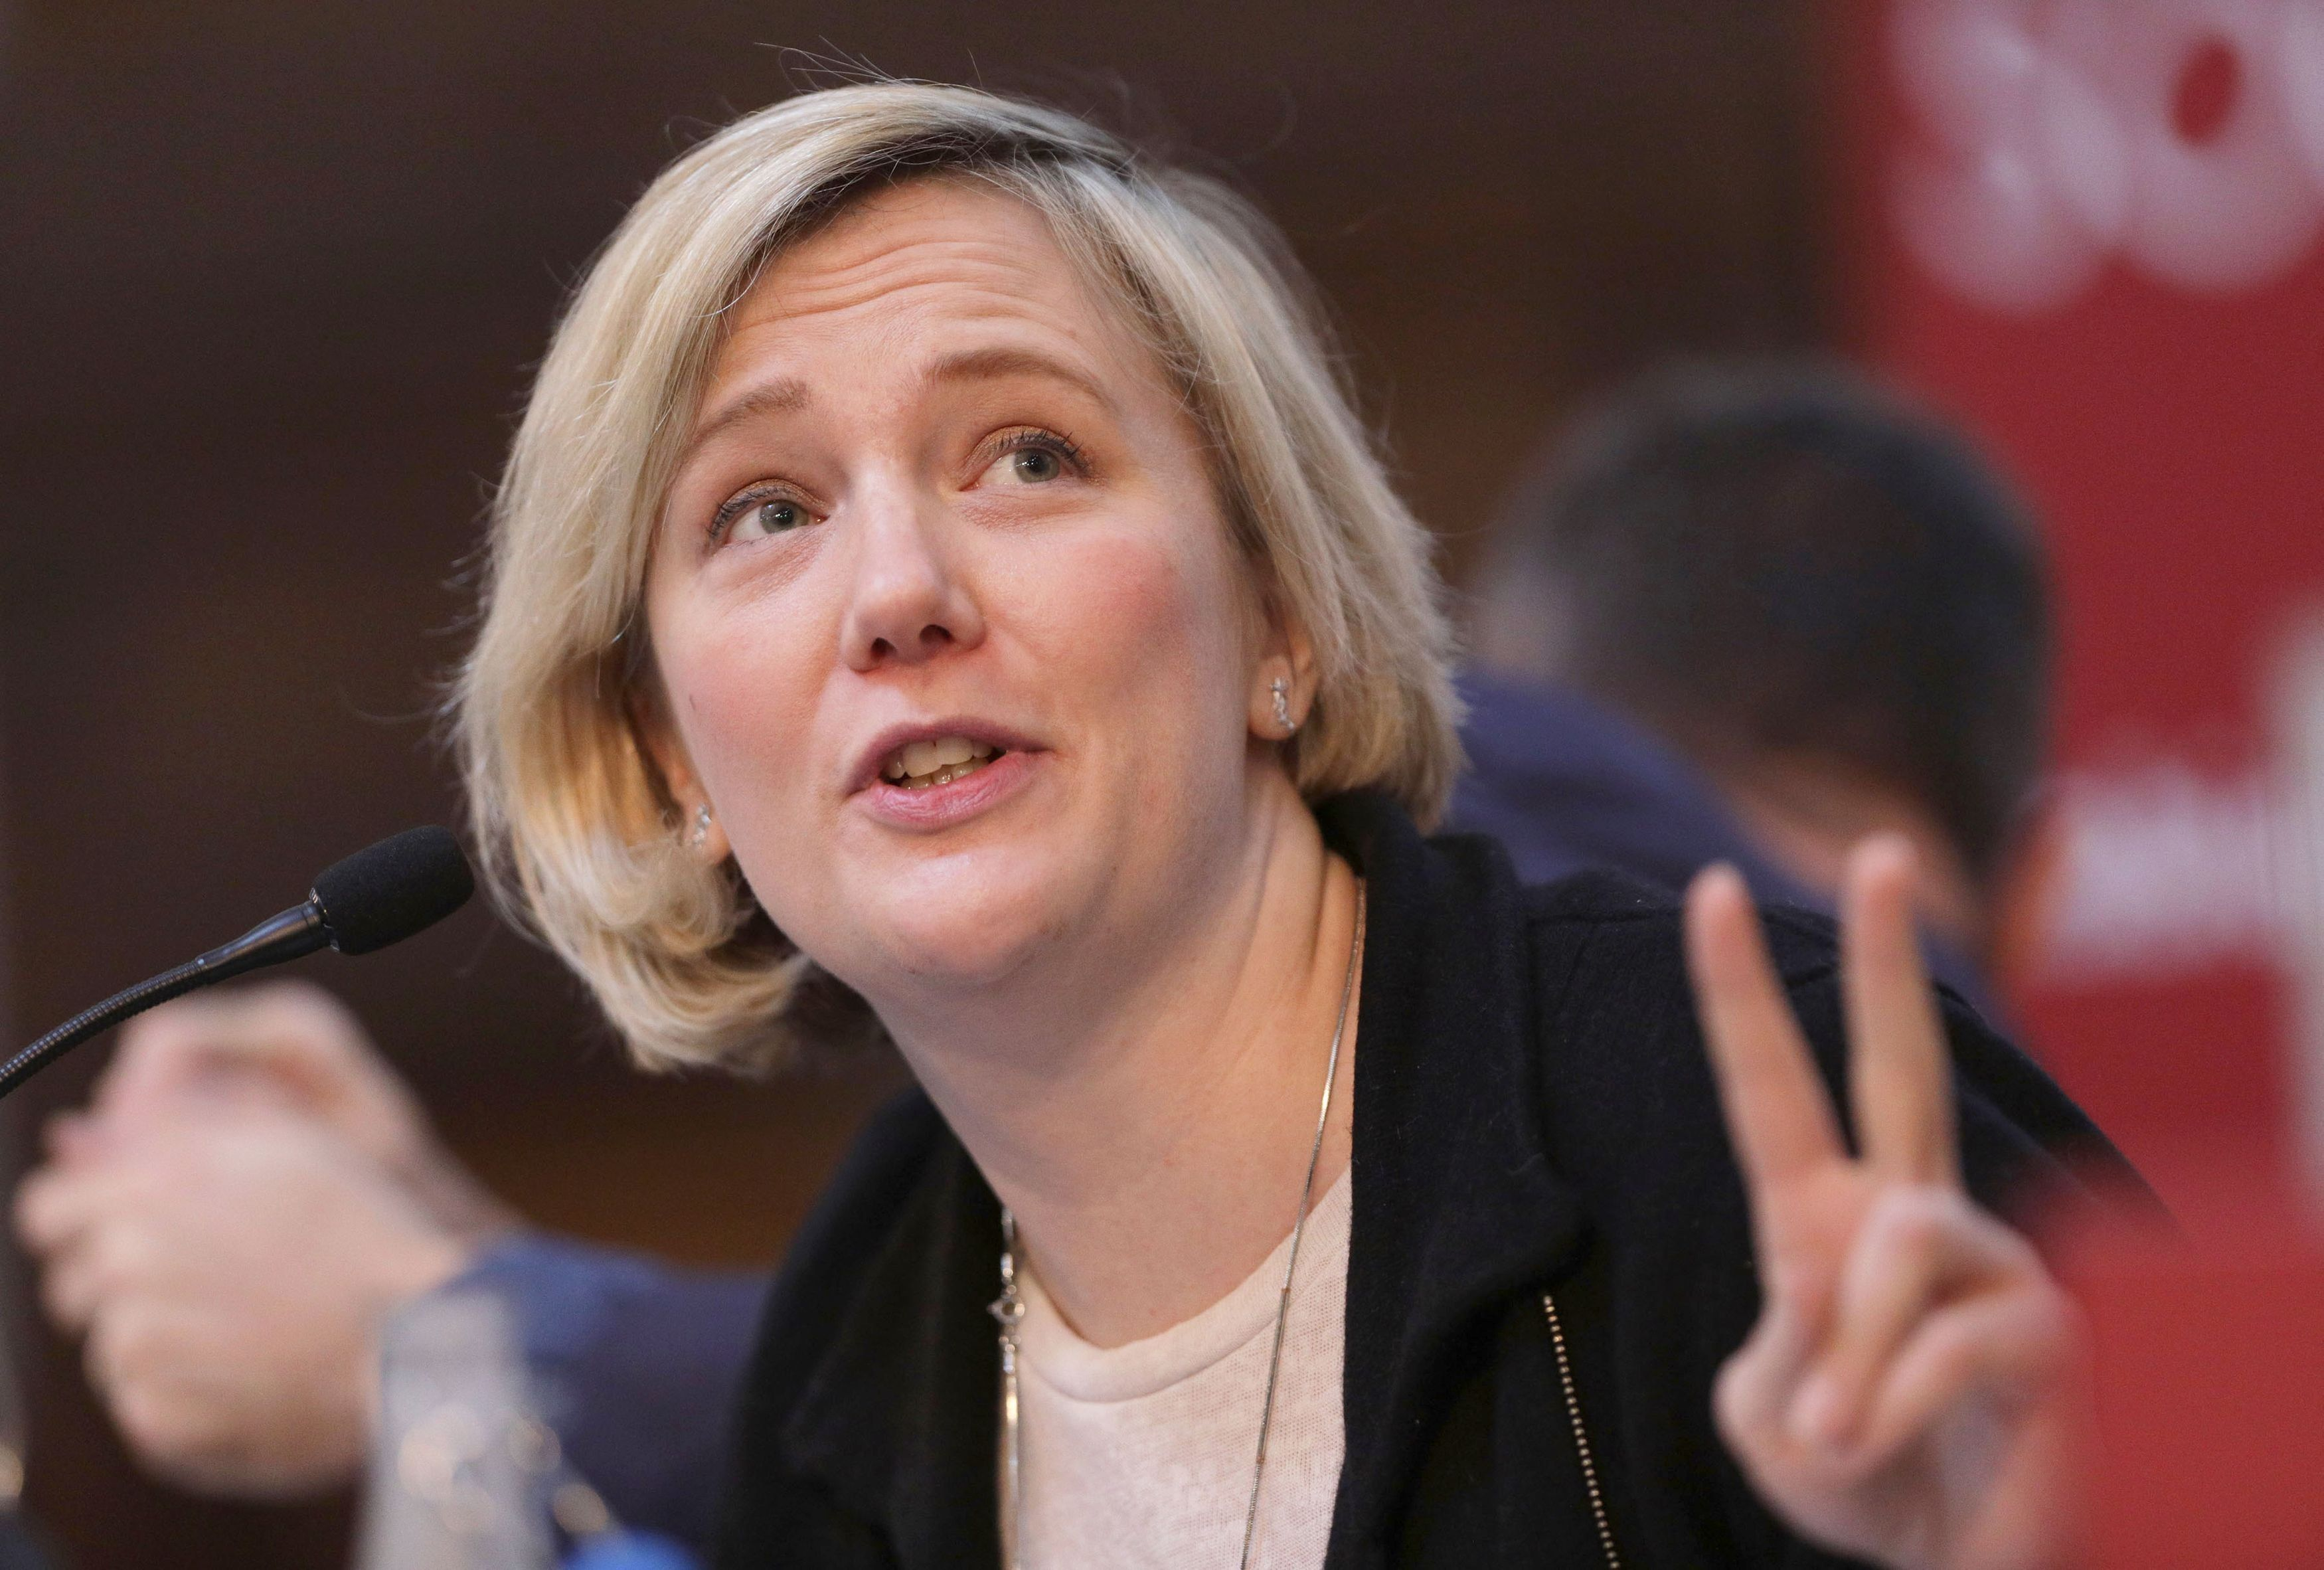 Labour MP Stella Creasy has hit out at an approach from pro-Corbyn blog Skwawkbox just hours after an antisemitism rally